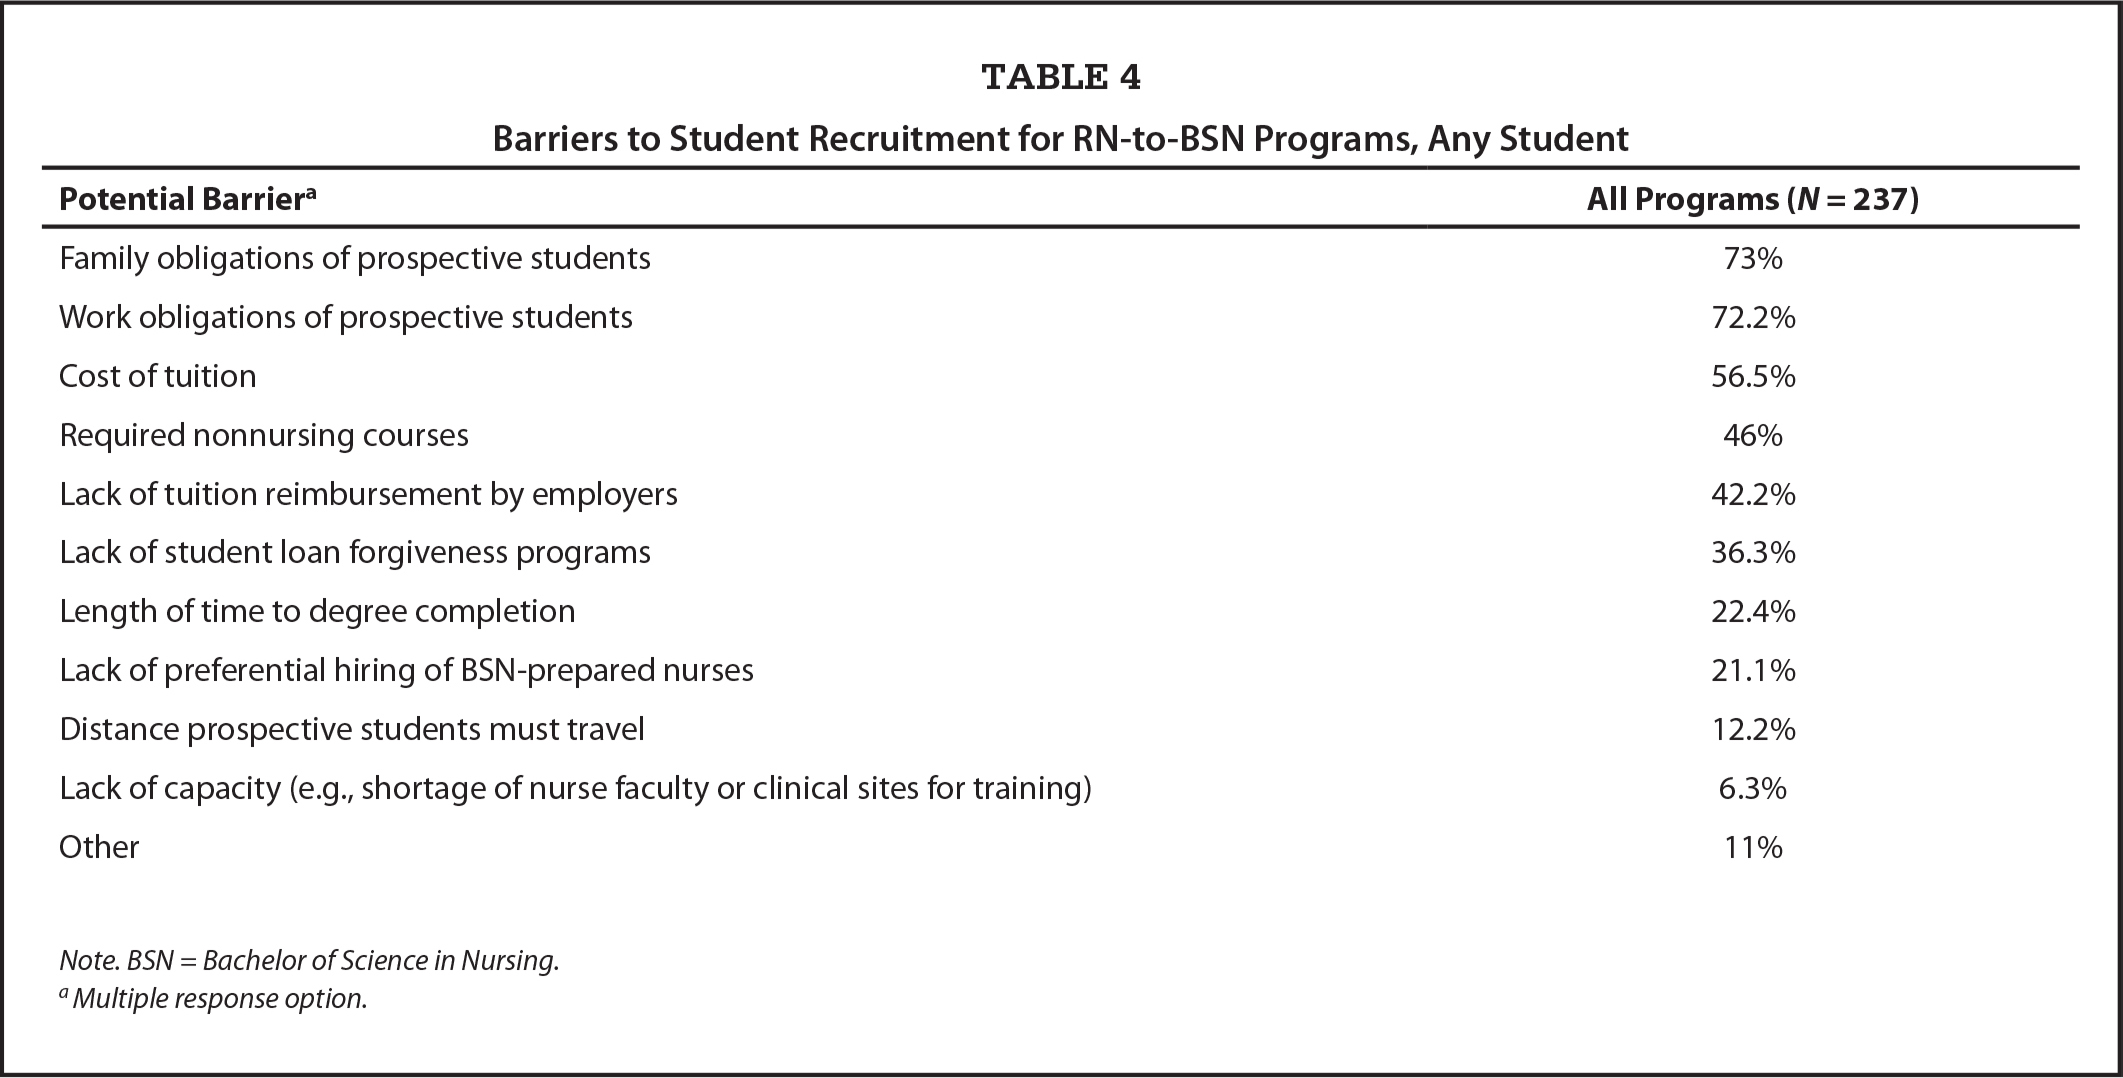 Barriers to Student Recruitment for RN-to-BSN Programs, Any Student